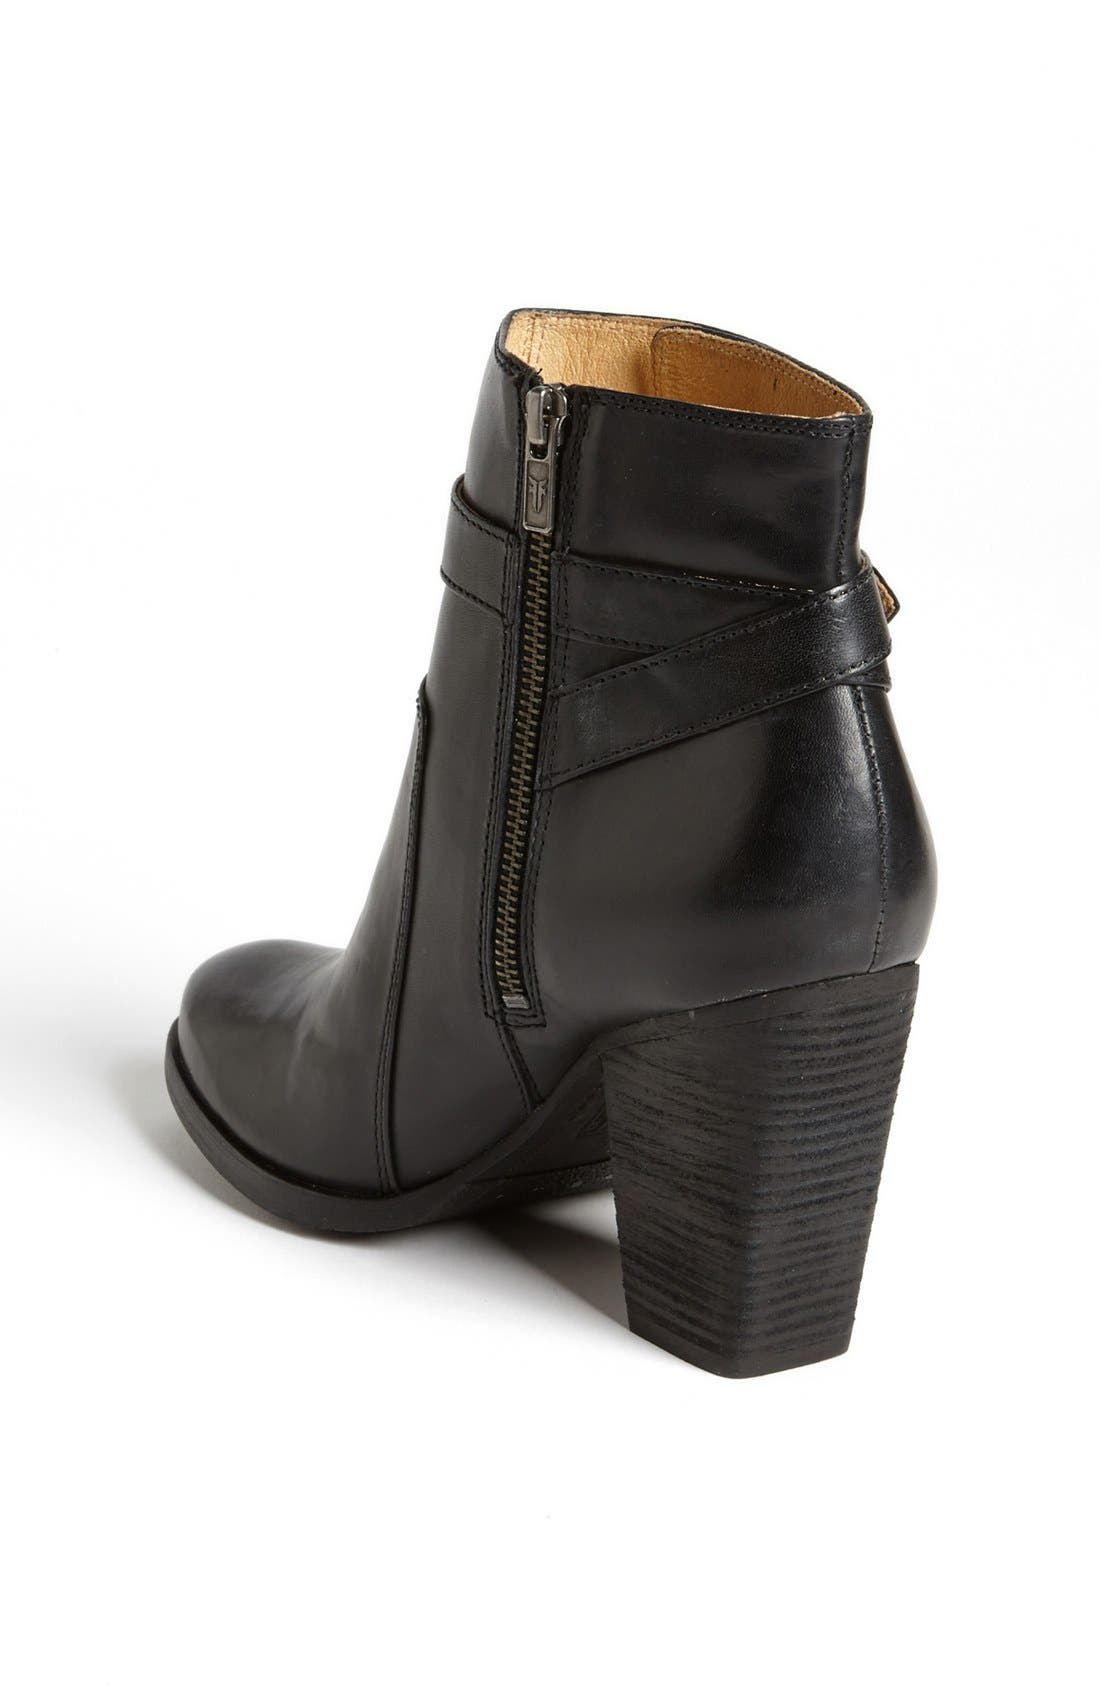 'Patty' Leather Riding Bootie,                             Alternate thumbnail 5, color,                             001